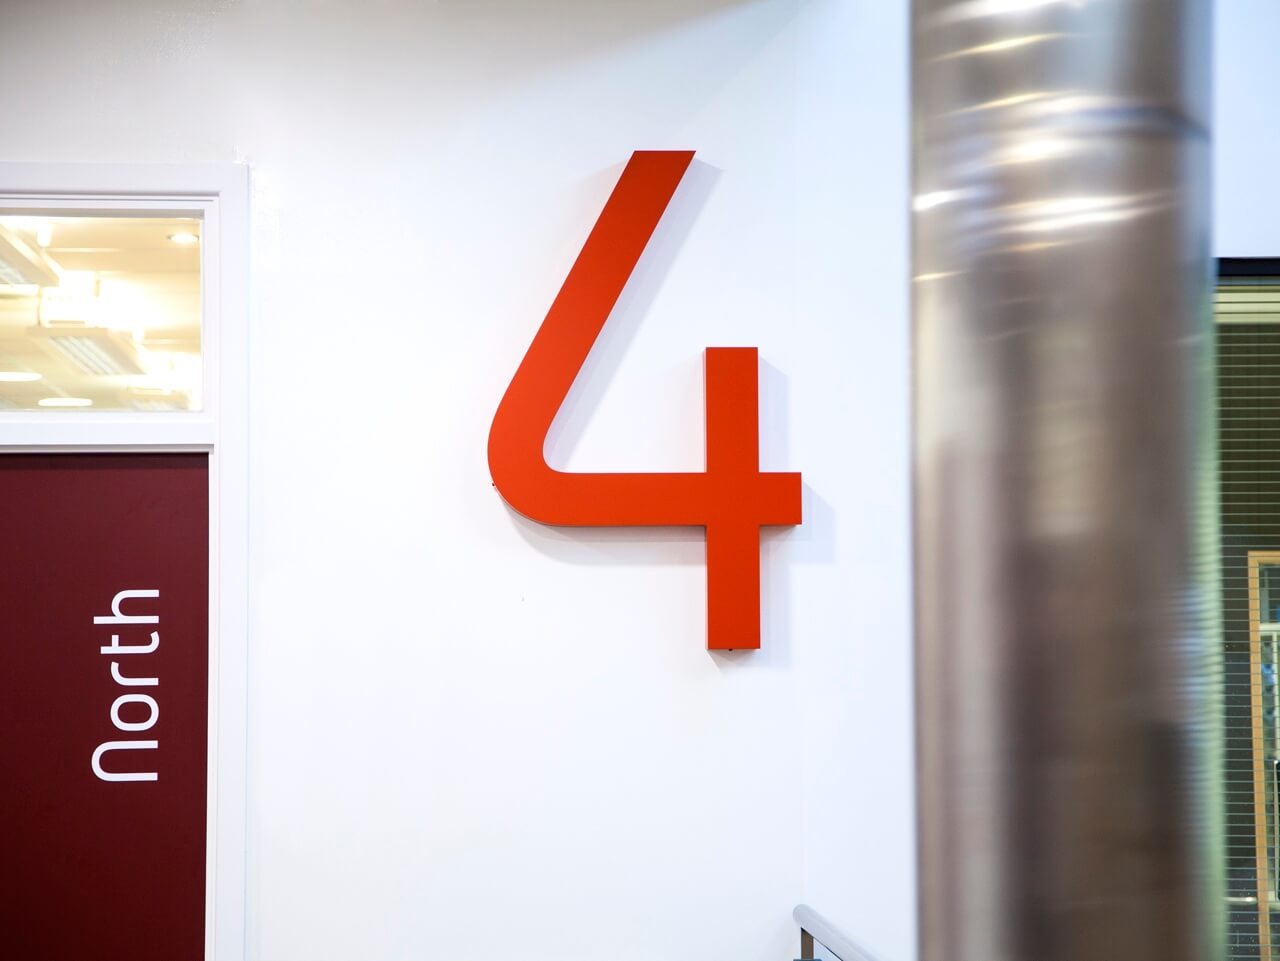 3D signage for floor numbers